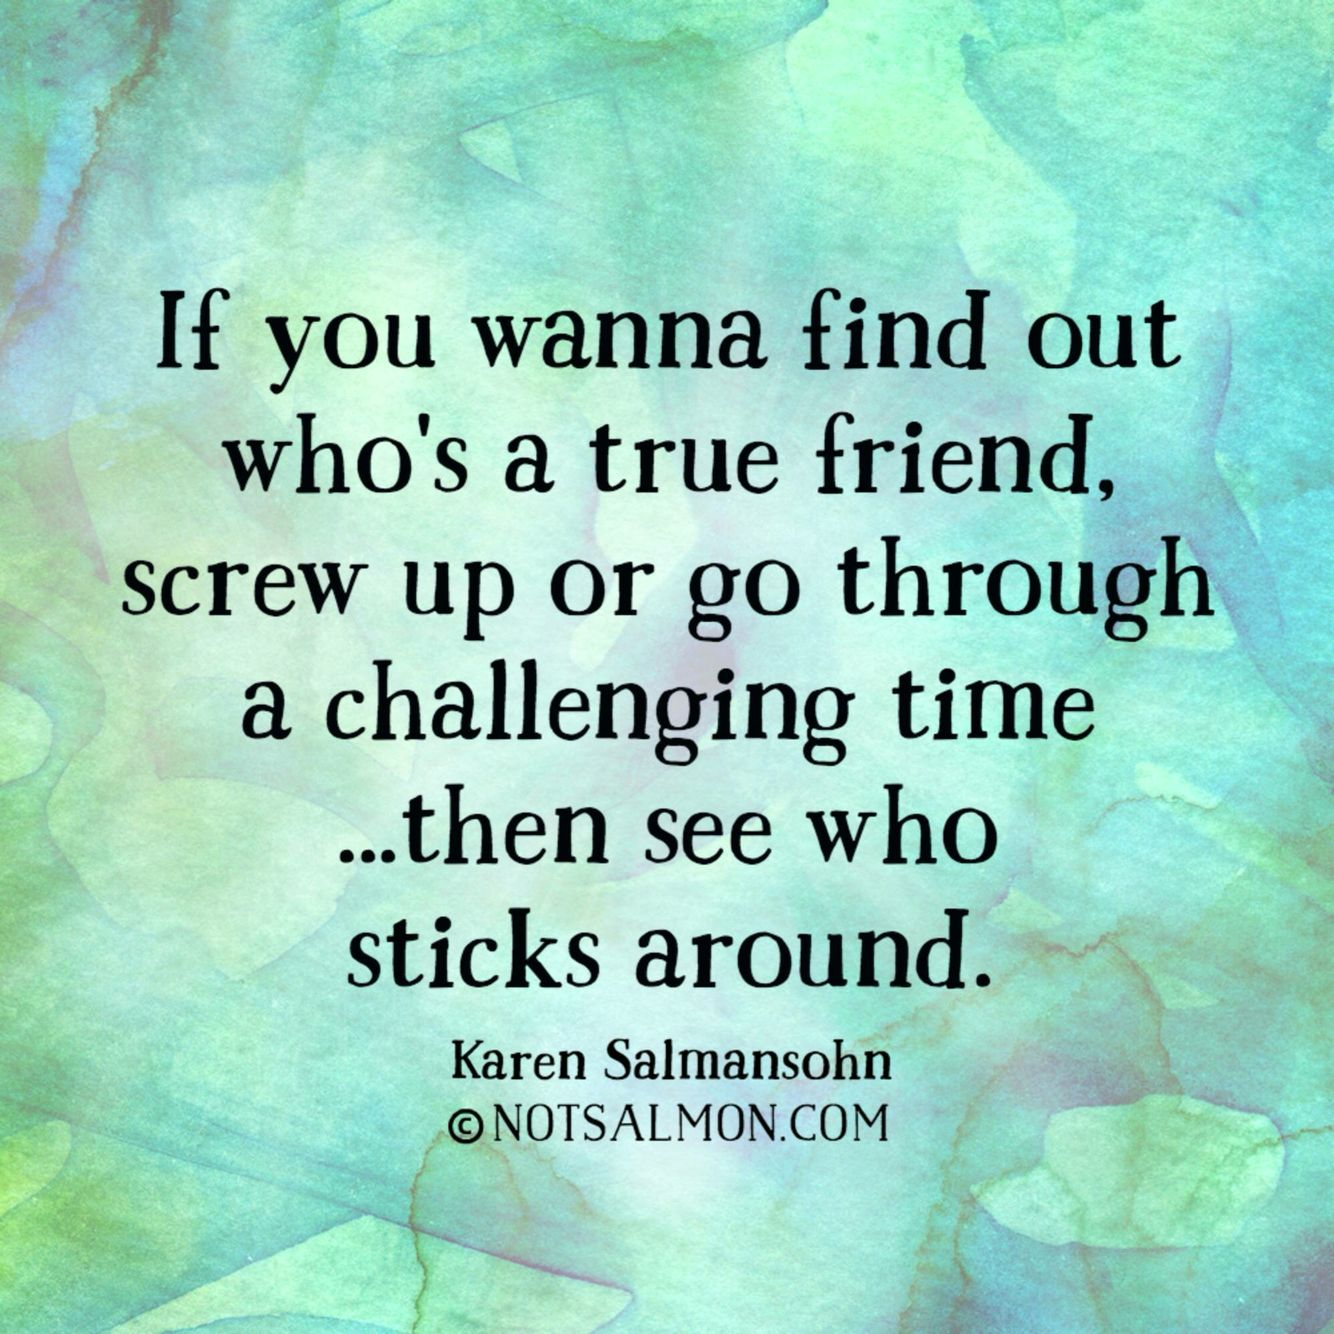 If you want to find out who s a true friend screw up or go through a challenging timeen see who sticks around